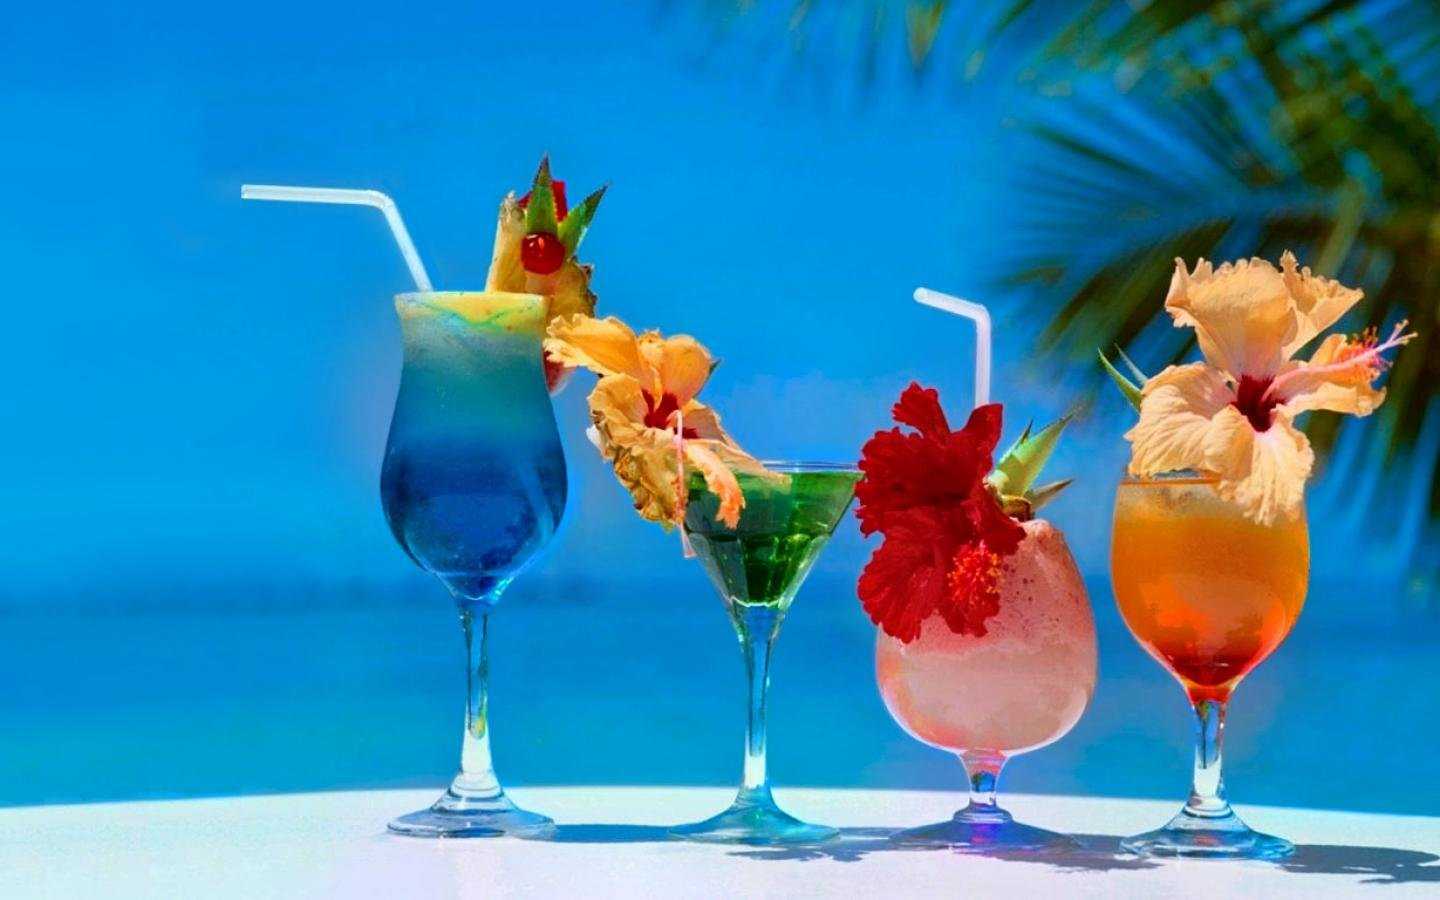 Free Cocktail high quality wallpaper ID:242802 for hd 1440x900 desktop